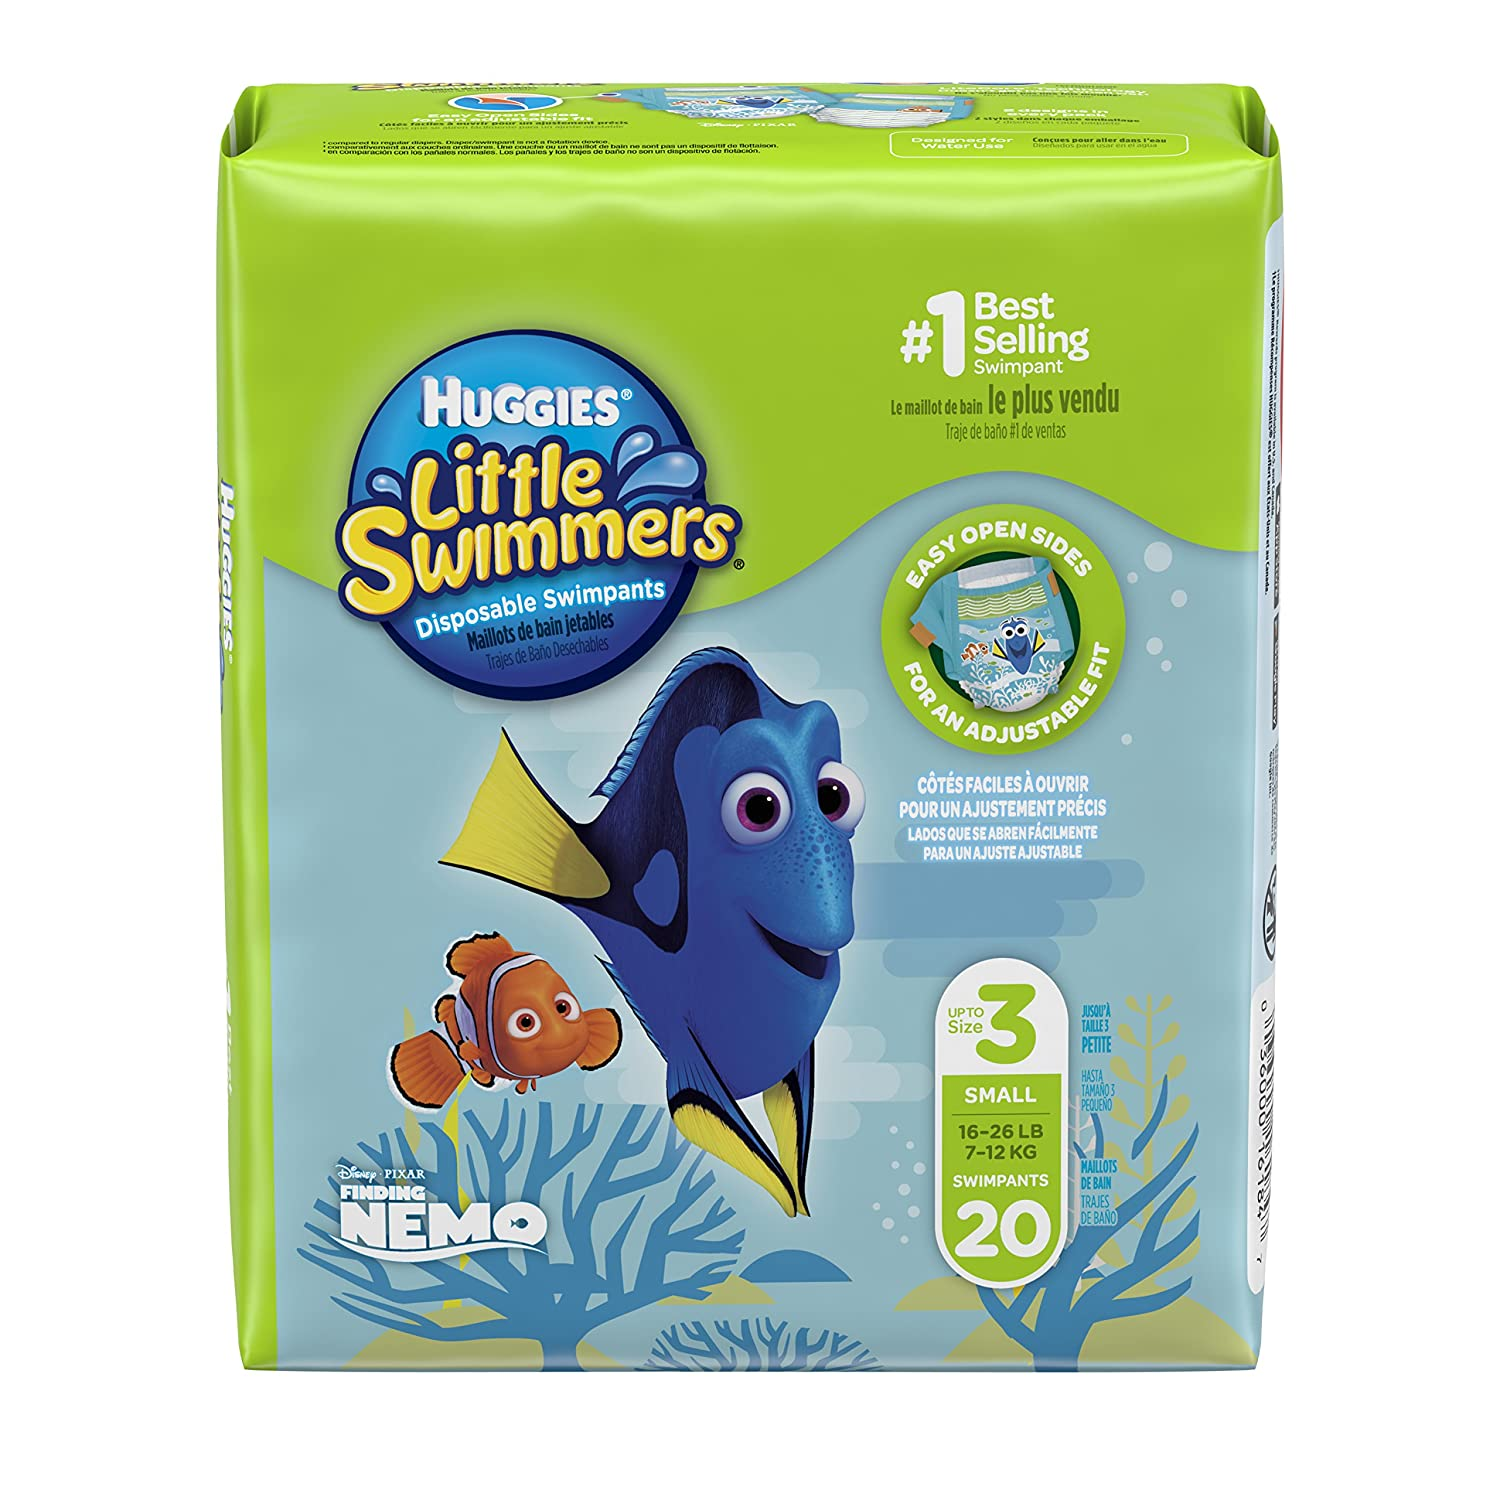 Huggies Little Swimmers Disposable Swim Diapers, Swimpants, Size 3 Small (16-26 lb.), 20 Count (Packaging May Vary) 16184